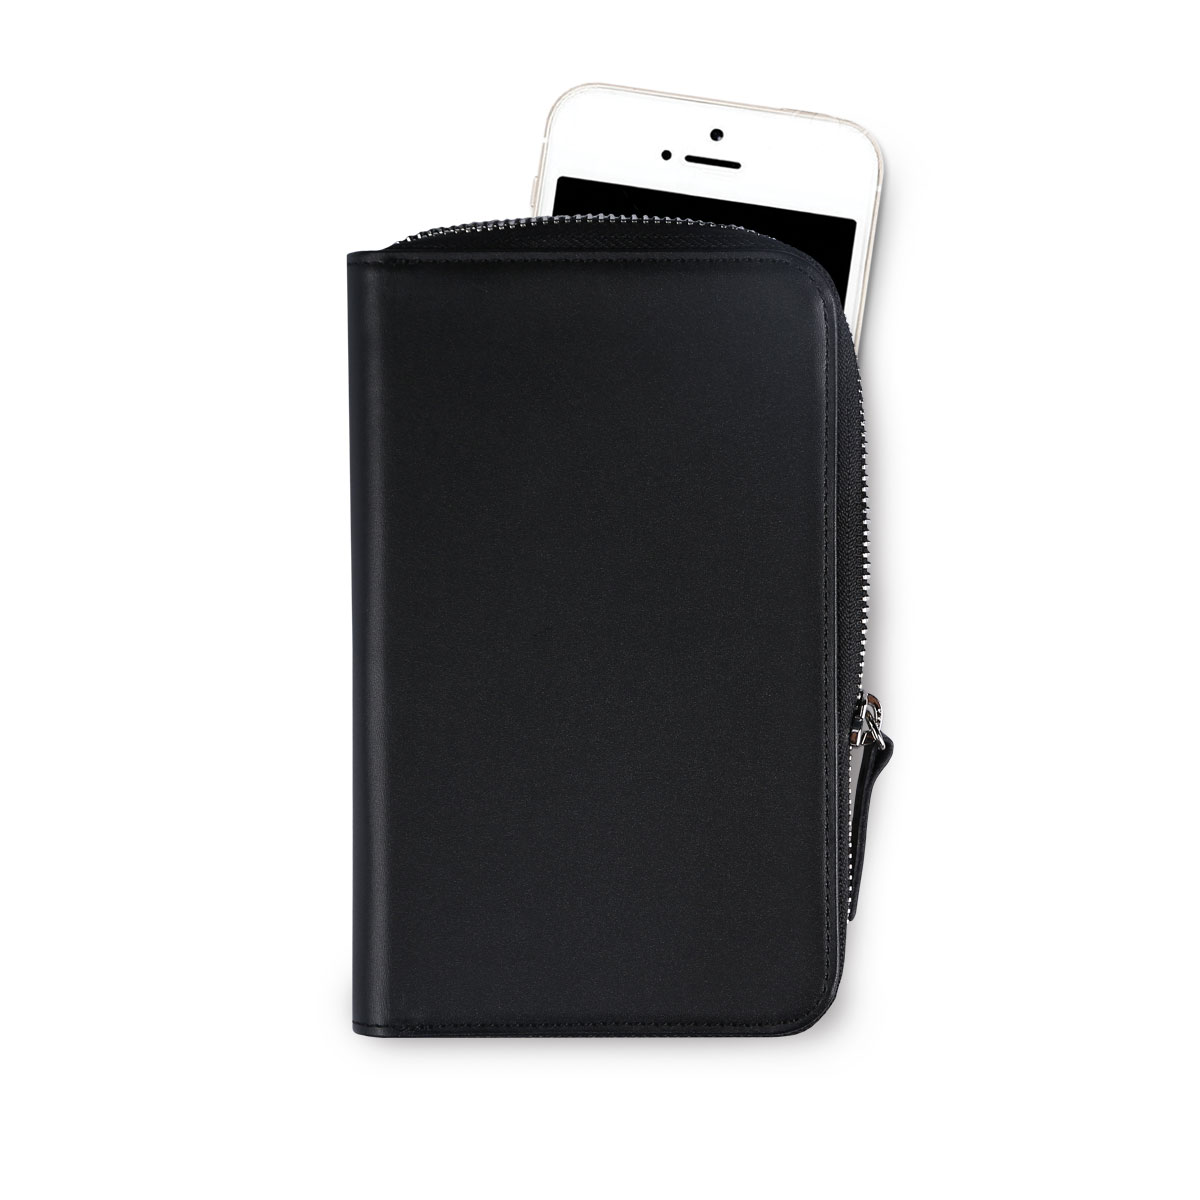 Daily Phone Pocket Plus Black